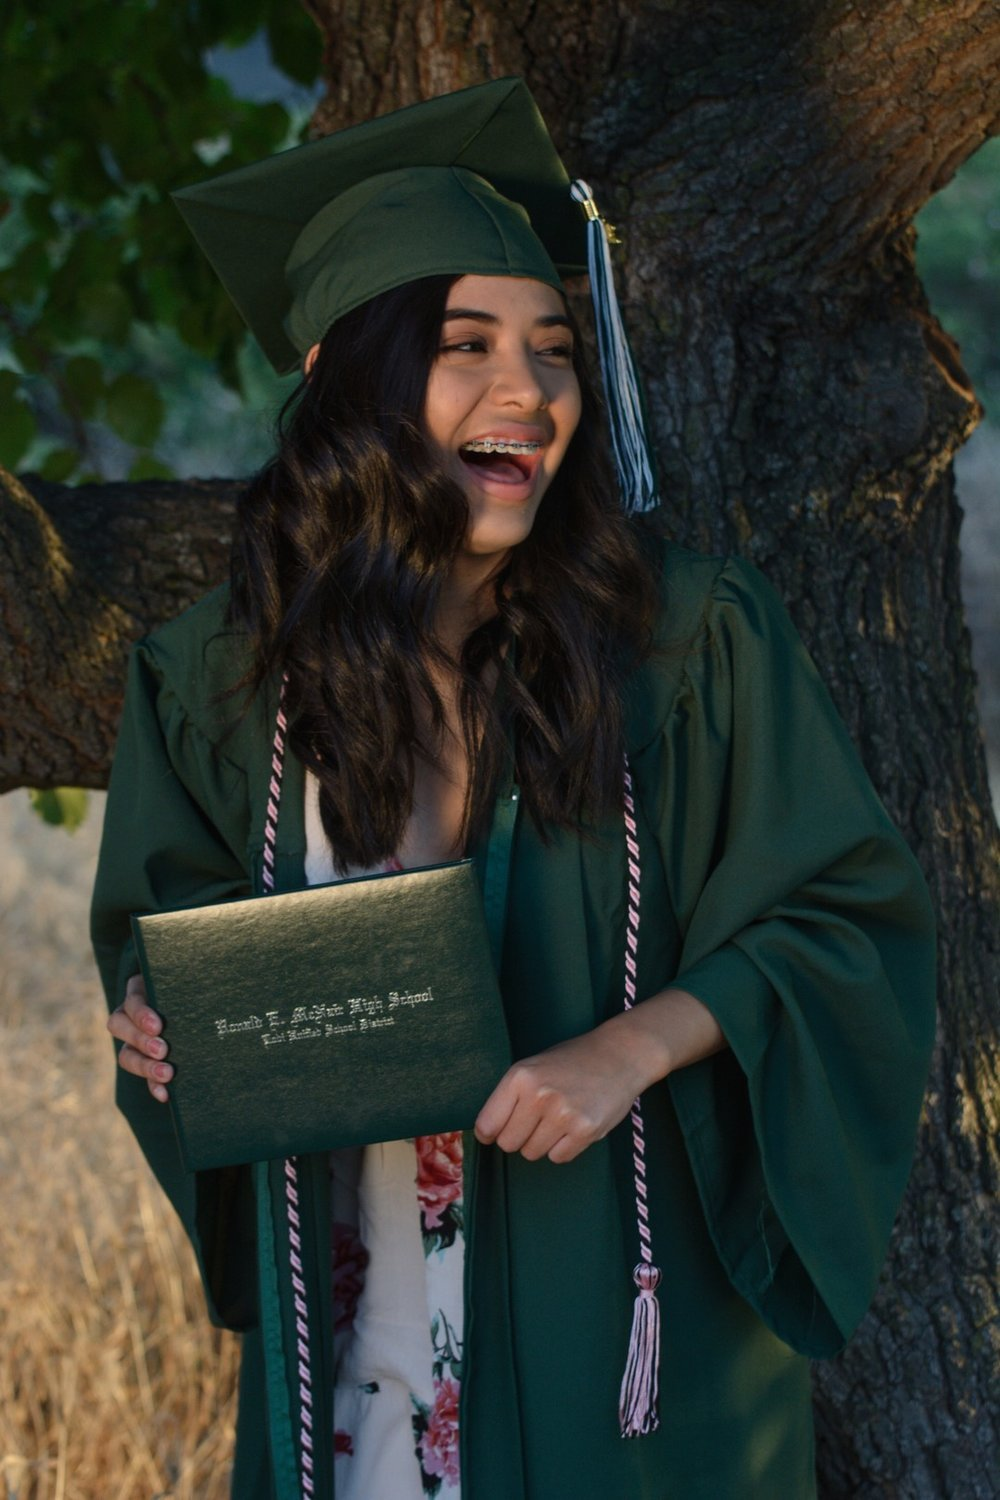 High School graduate, Isabella of ca - Photography by JessShootMeCongratulations Isabella!